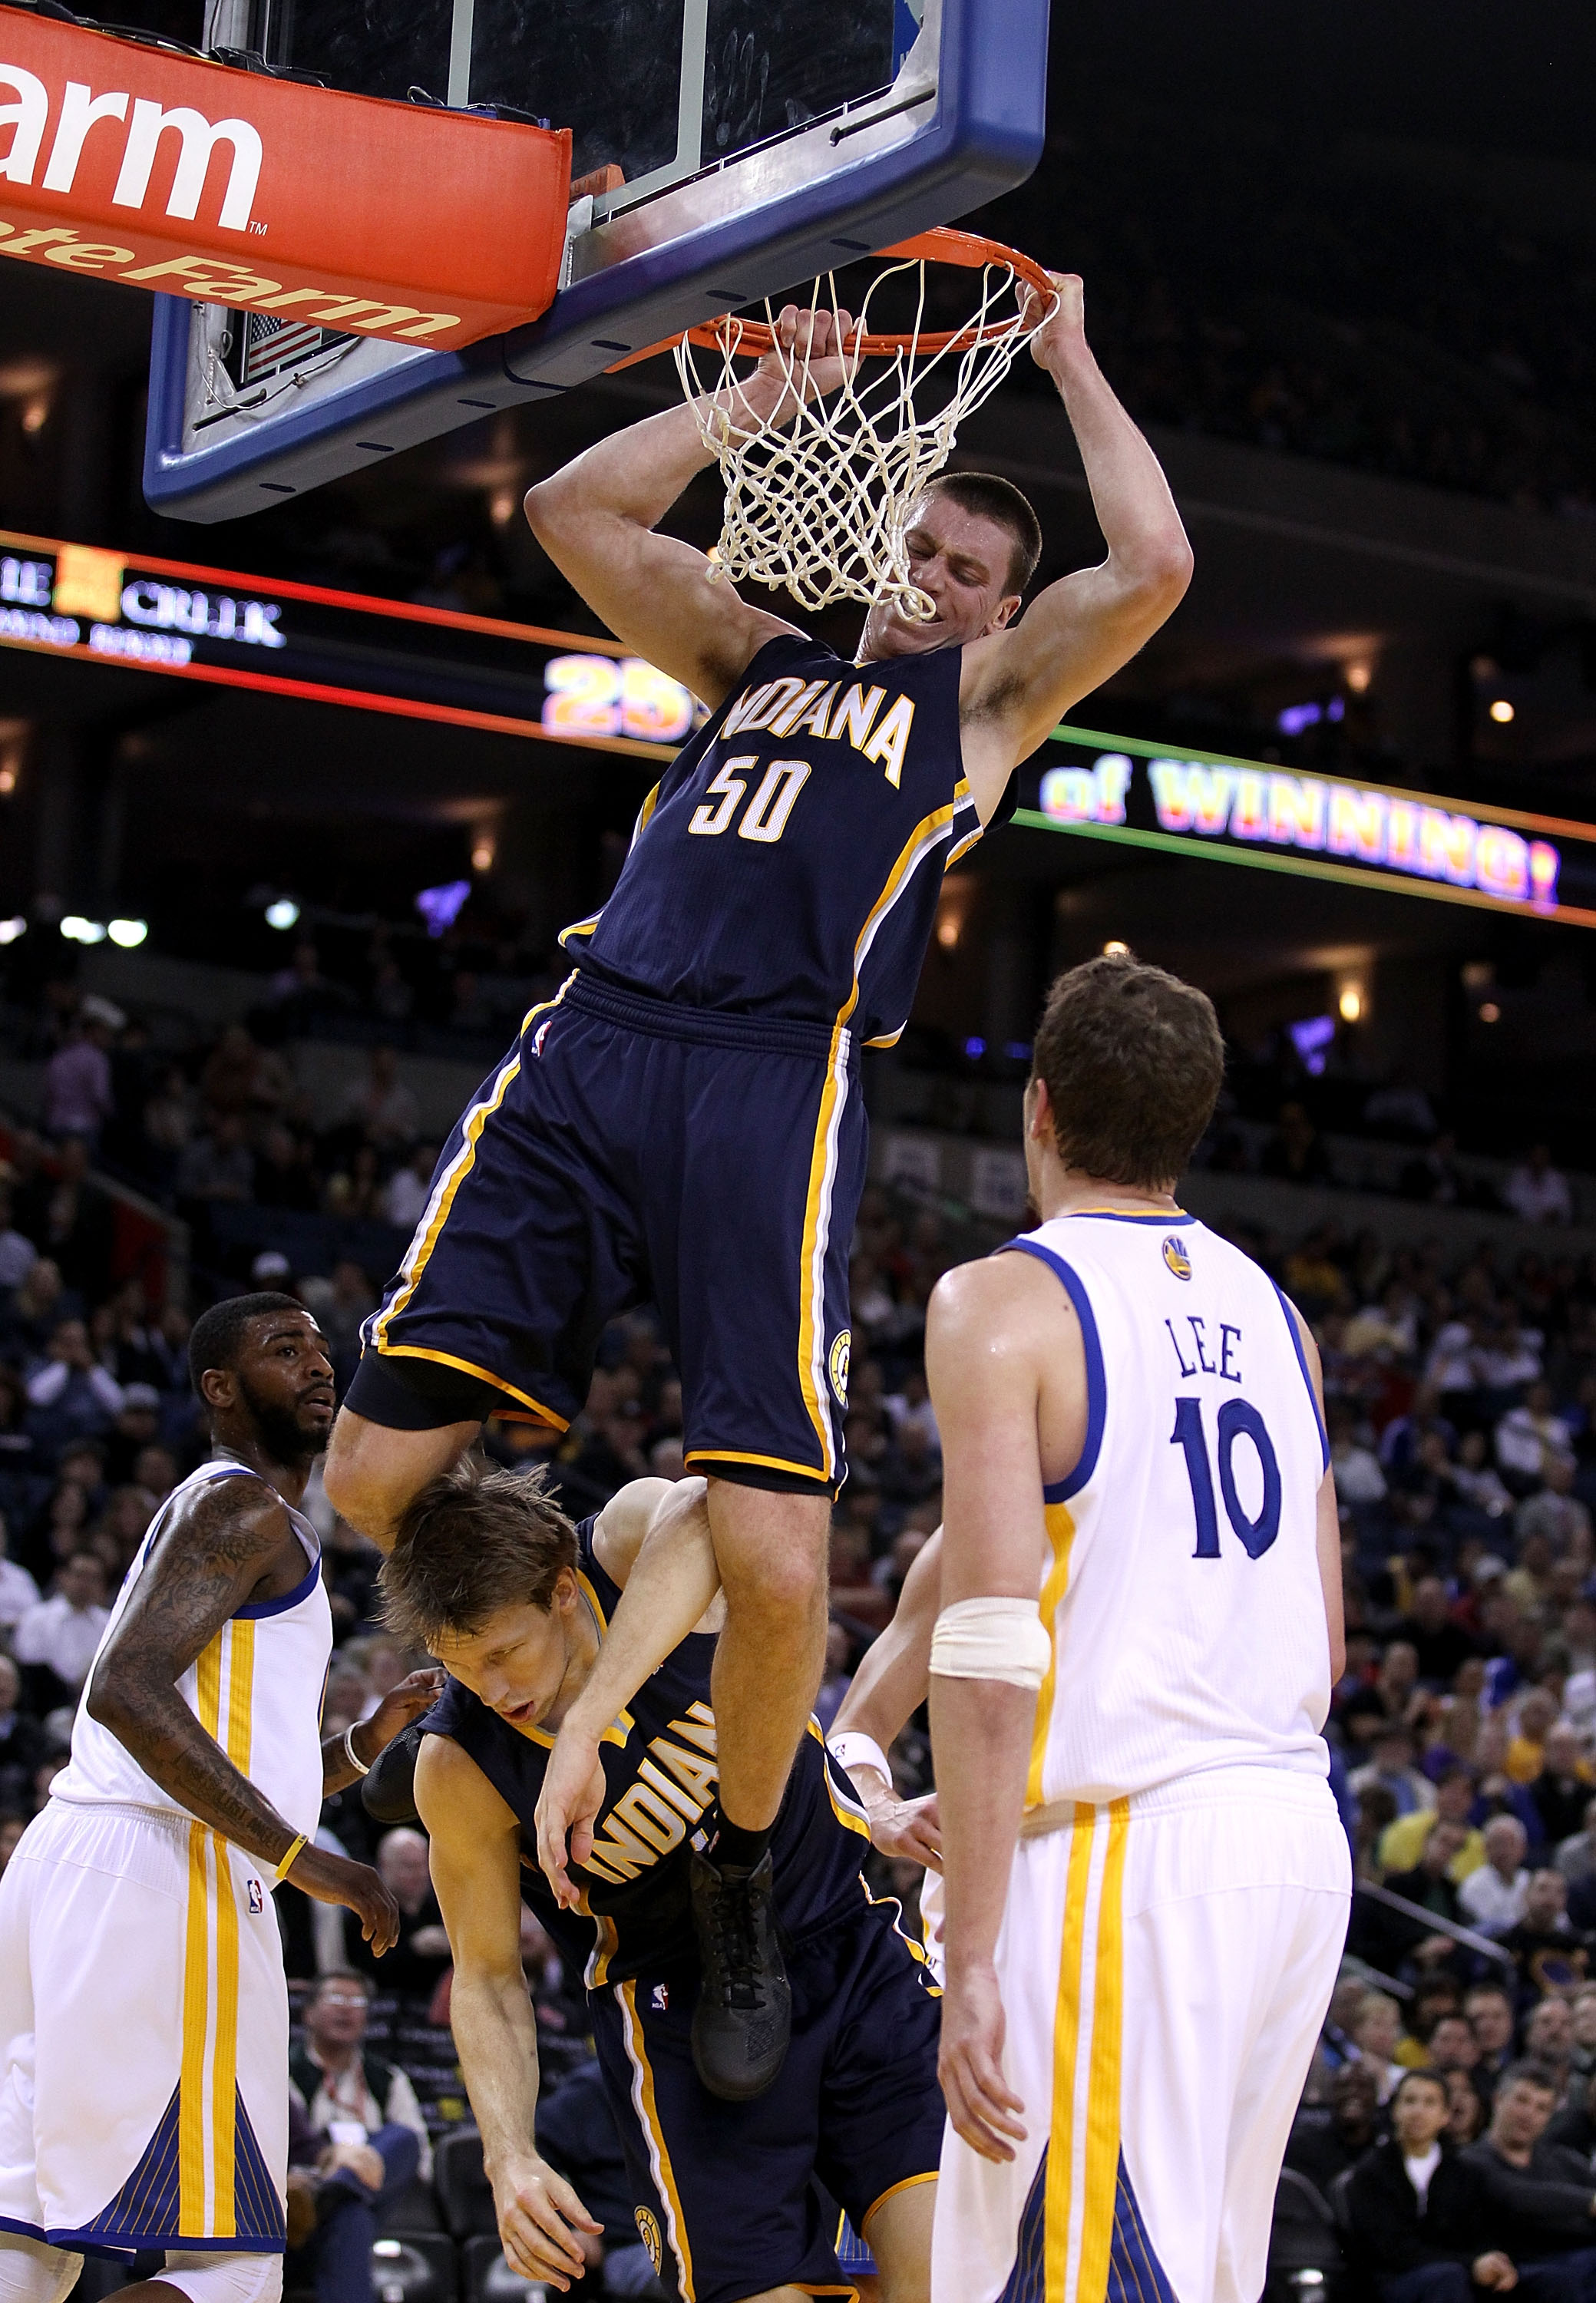 Tyler Hansbrough of the Indiana Pacers.